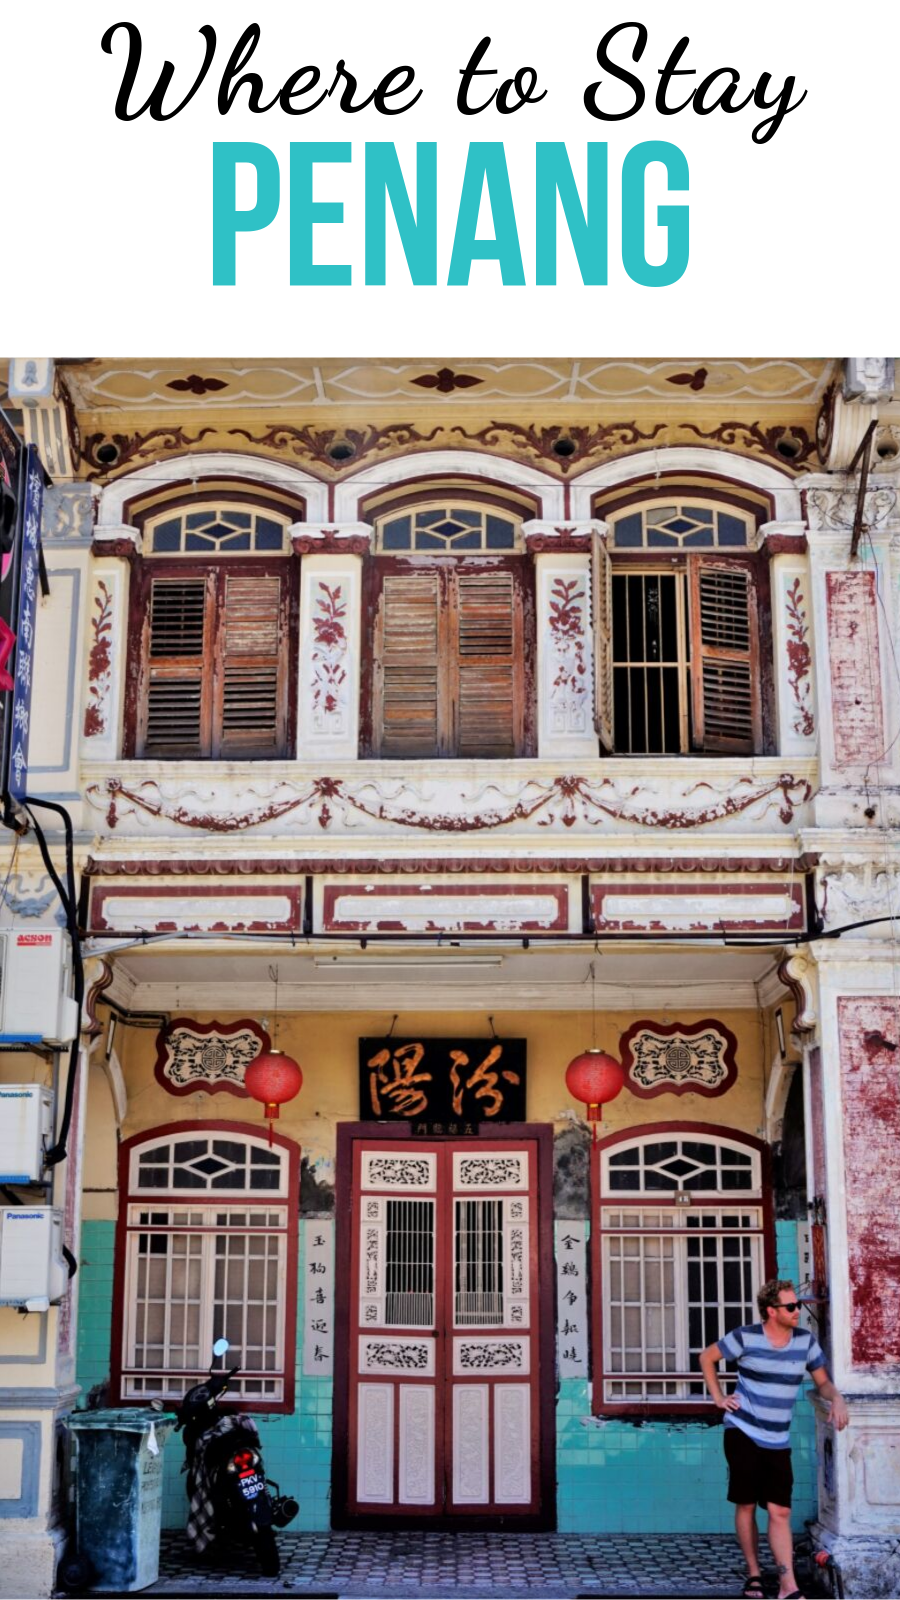 An overview of the best areas to stay in Penang and information about the best hostels in Penang and best hotels in Penang, Malaysia. #penang #malaysia #georgetown #travel #asia #southeastasia #streetart #hotelpenang #hostelpenang #accommodation #hotel #hostel #accommodationpenang #wheretostayinpenang #travel #besthostels #besthotels #explorepenang #traveltips #traveltipsforeveryone #travelguide #backpacking